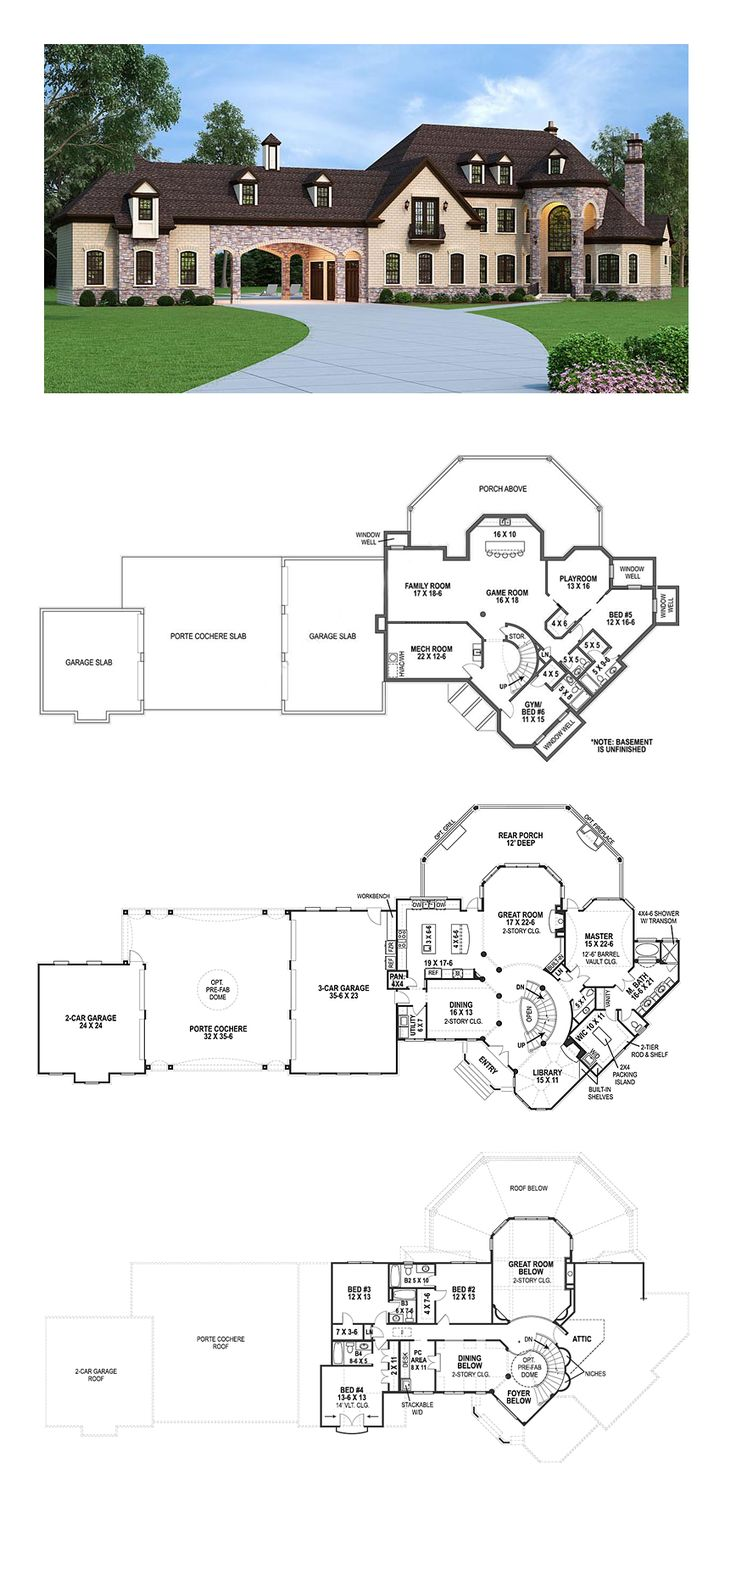 25 best french house plans ideas on pinterest french for European house plans with basement